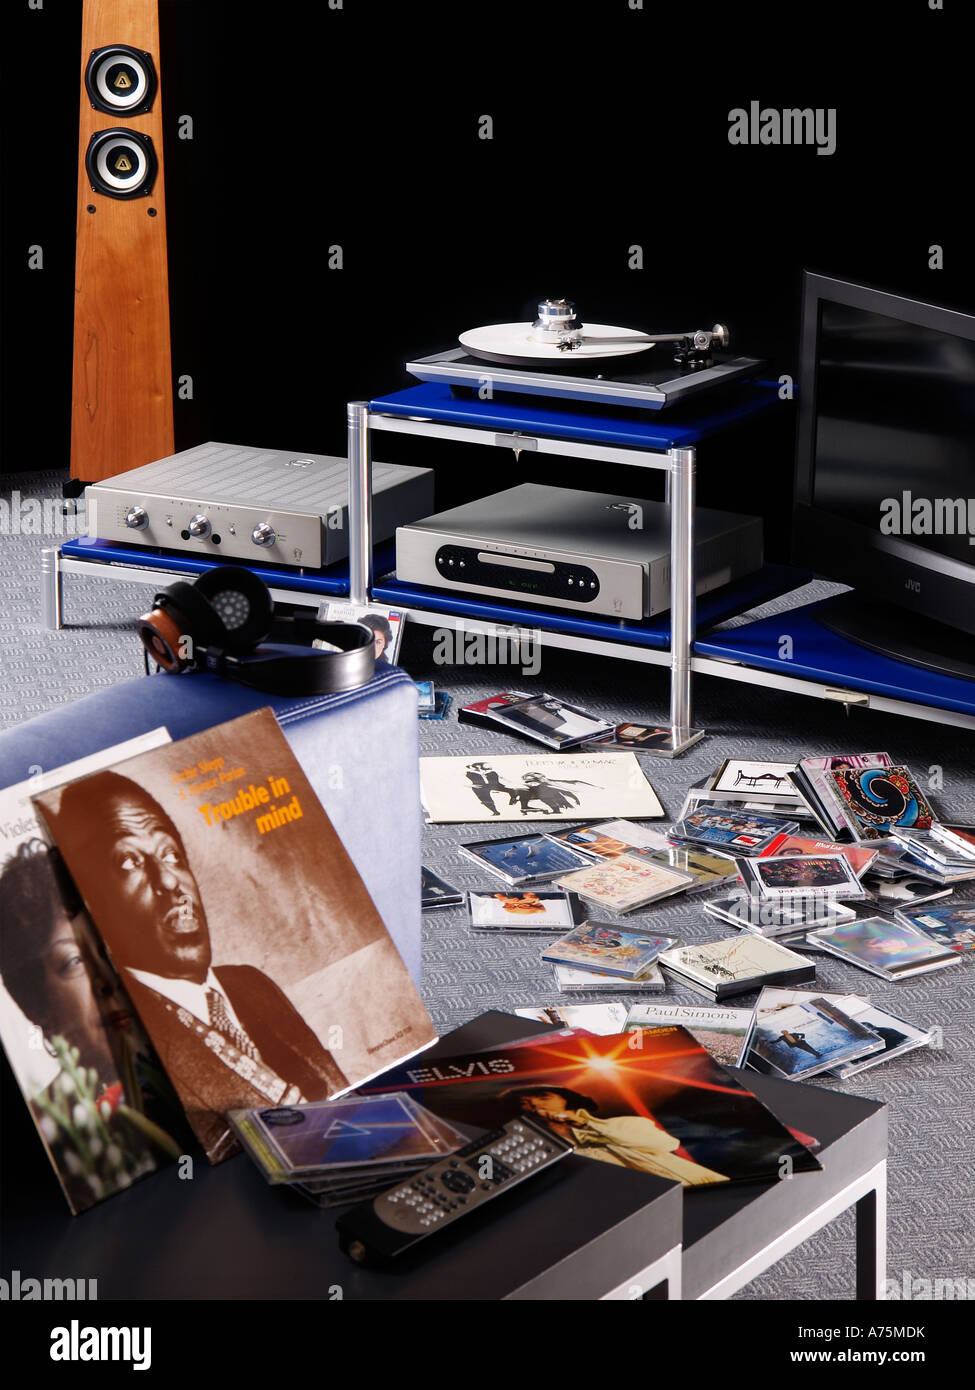 High end audio hifi system with lots of music records cd s headphone remote control hobby relaxing - Stock Image